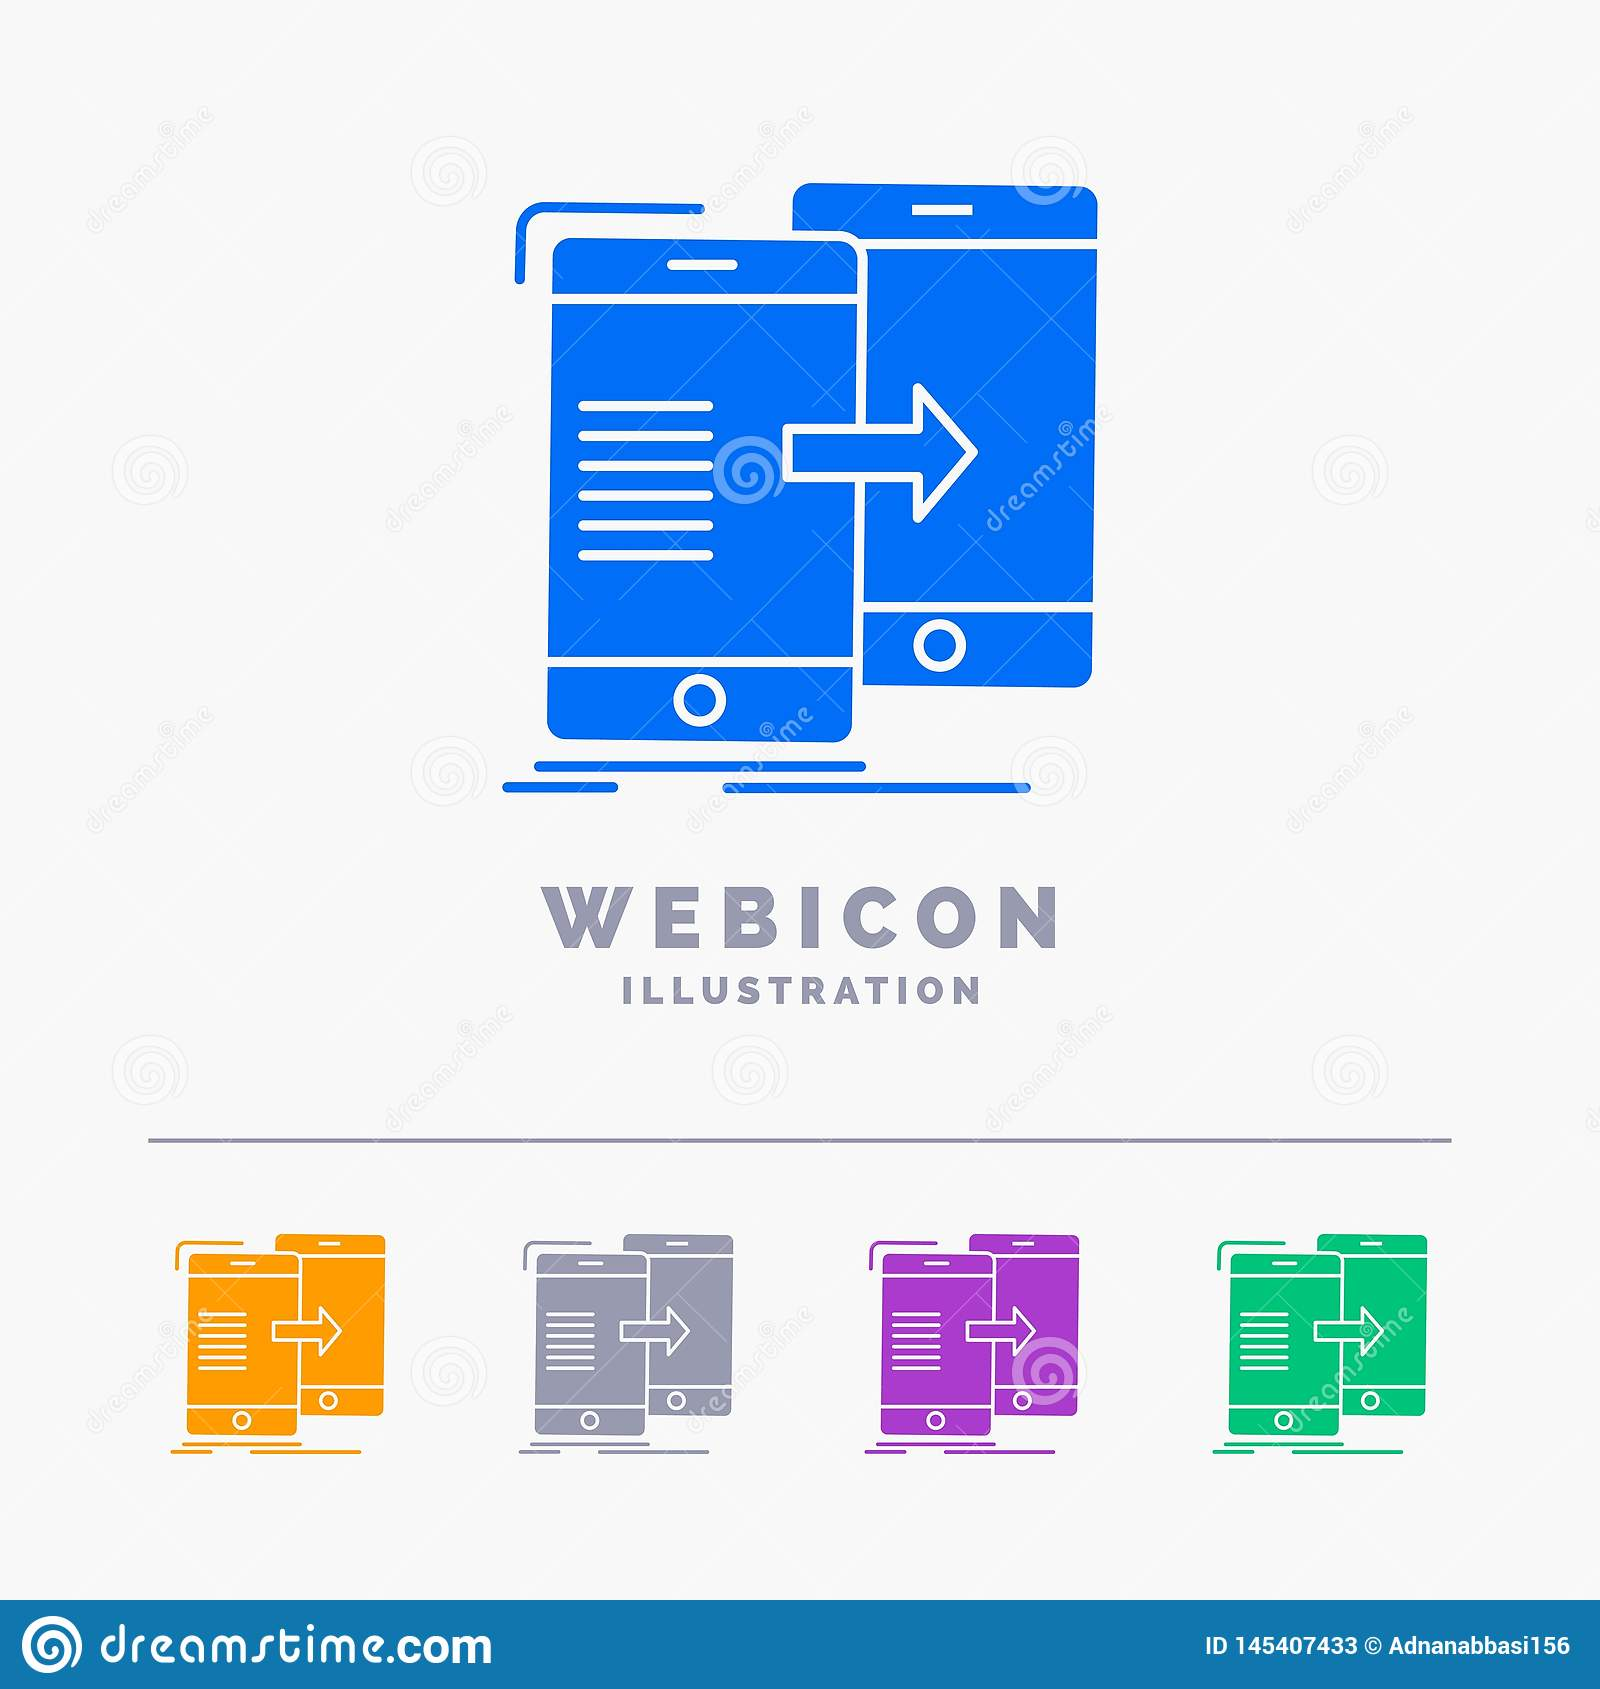 data, Sharing, sync, synchronization, syncing 5 Color Glyph Web Icon Template isolated on white. Vector illustration